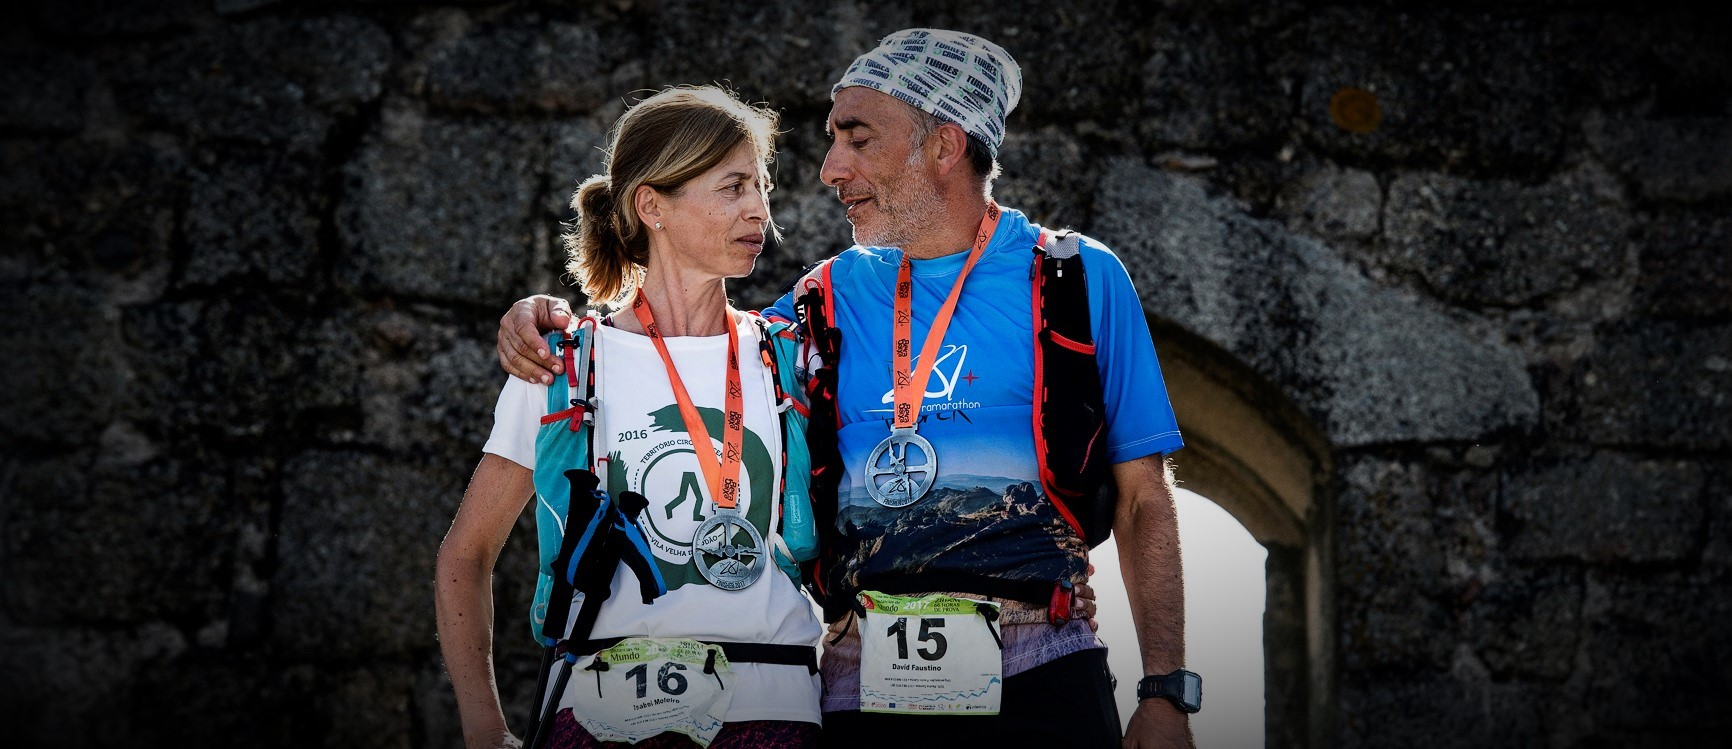 Portugal Ultramarathon